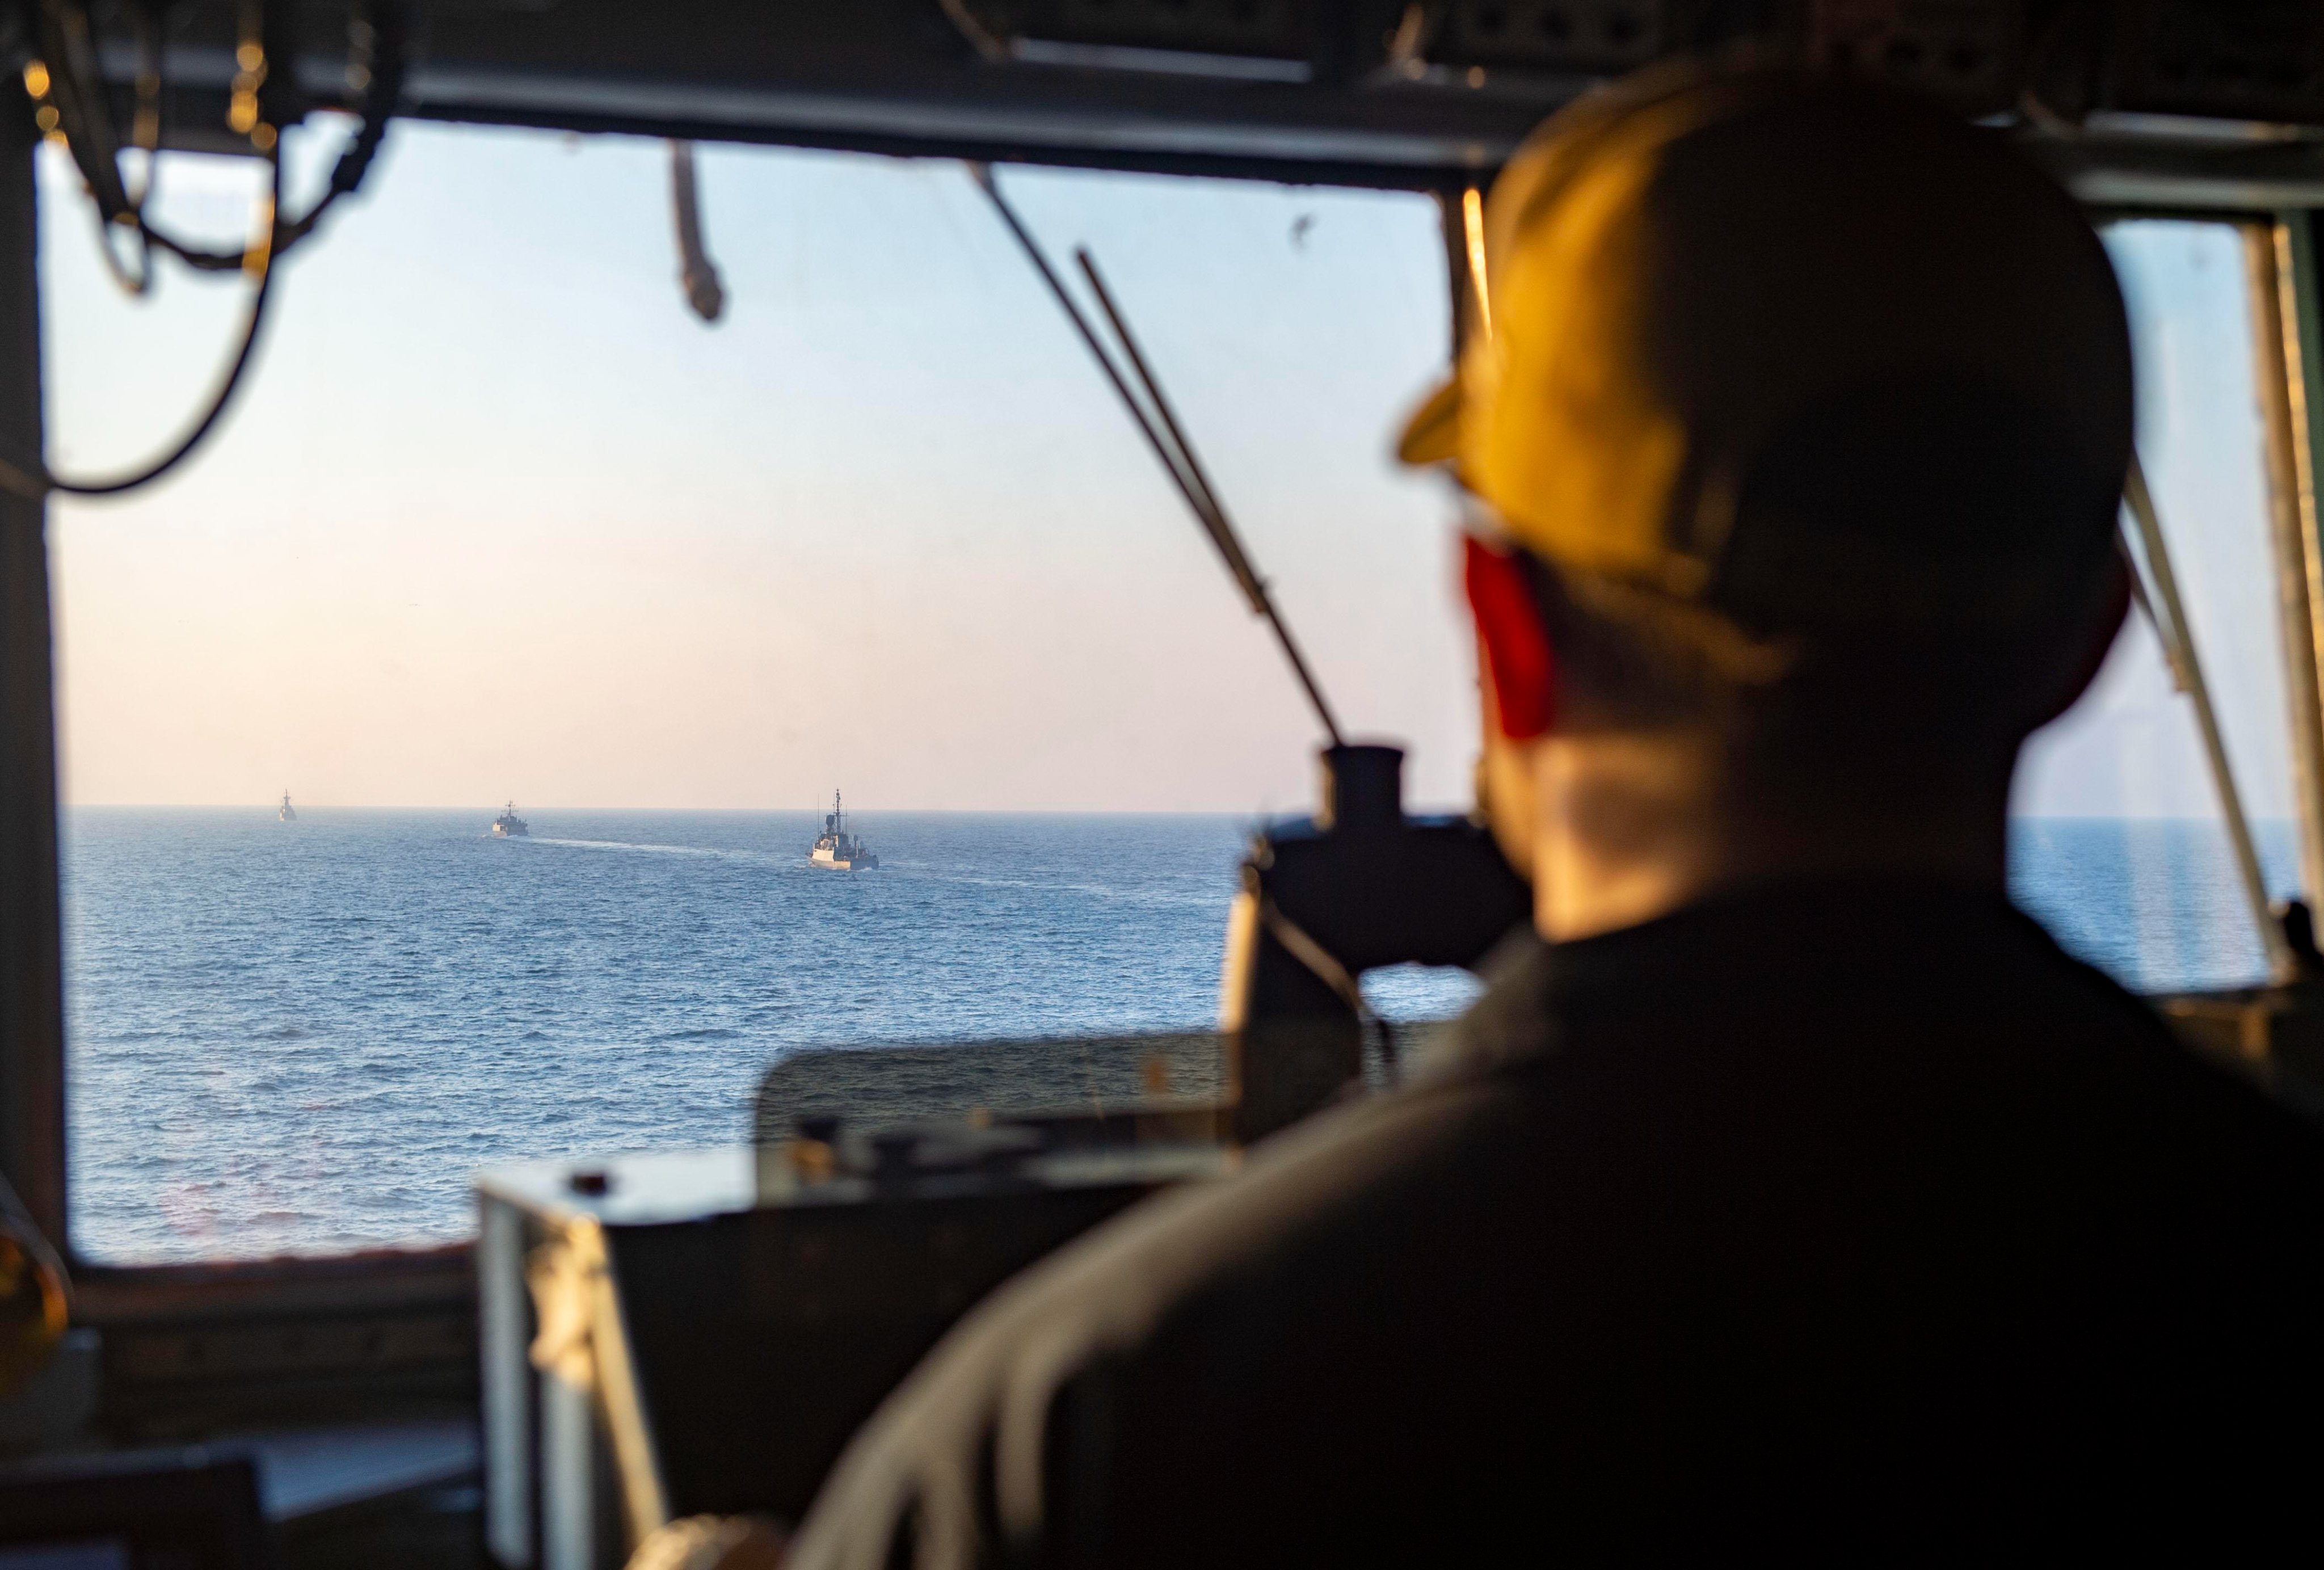 The guided-missile destroyer USS John Paul Jones (DDG 53), Royal Saudi Naval Forces corvette HMS Hitteen (616), minehunter HMS Al Jawf (420) and patrol boat HMS Oqbah (525) conduct a combined maritime security patrol in direct support to Coalition Task Force (CTF) Sentinel in the Arabian Gulf